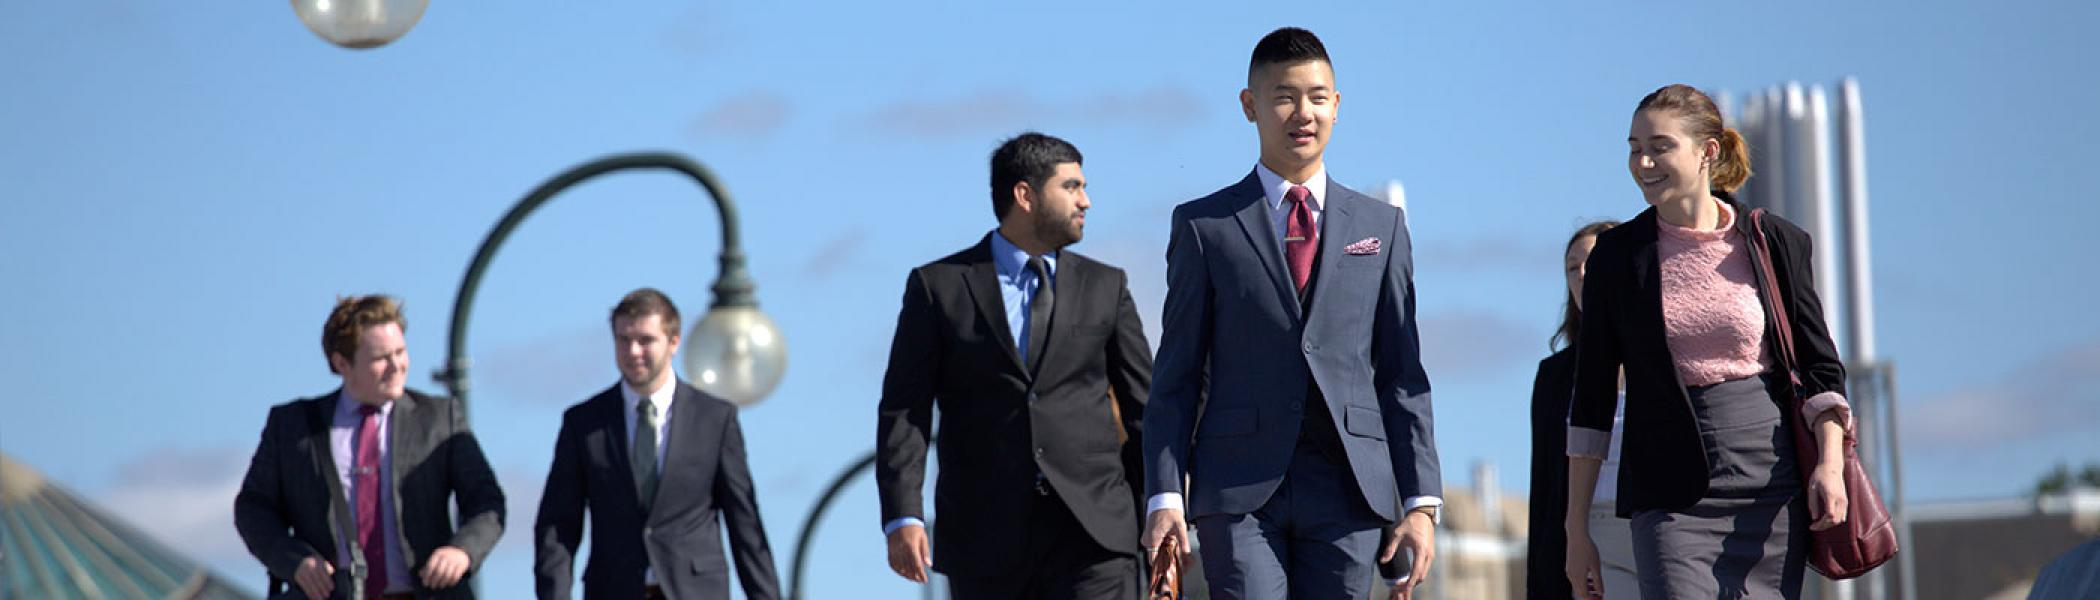 Business students walking across Faryon Bridge in business attire on a sunny day.